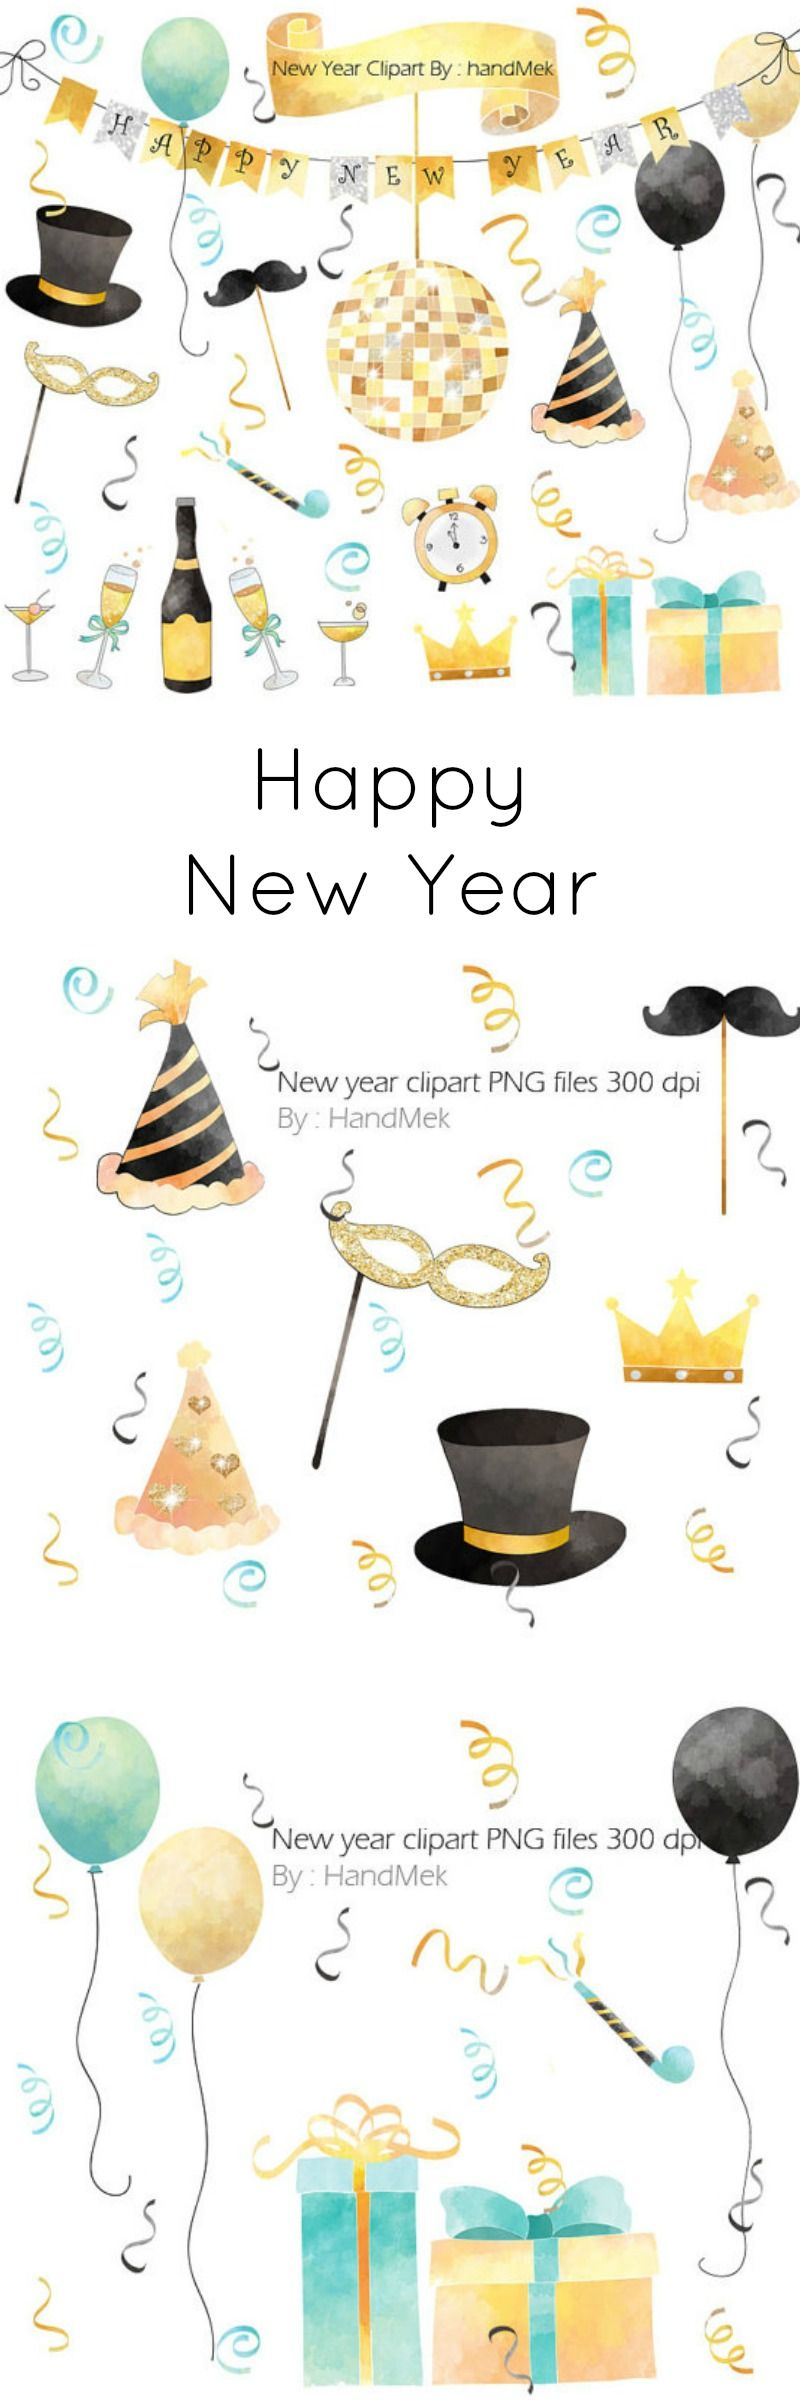 Happy New Year Graphics In Gold Silver And Pastel Colours Ad Graphicdesign Newyears Watercolor New Year Clipart Clip Art Digital Graphics